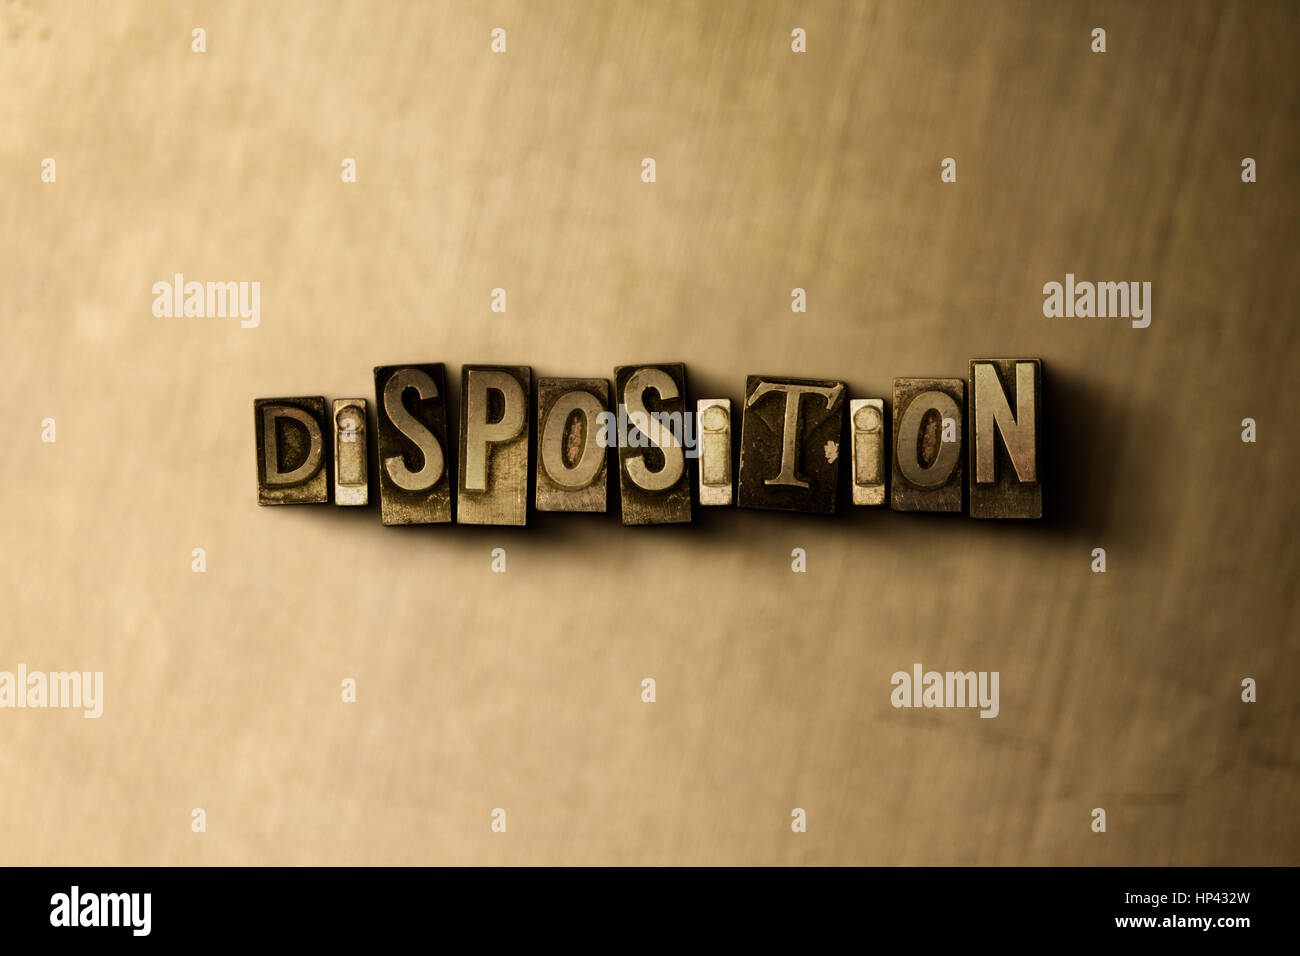 DISPOSITION - close-up of grungy vintage typeset word on metal backdrop. Royalty free stock illustration.  Can be - Stock Image